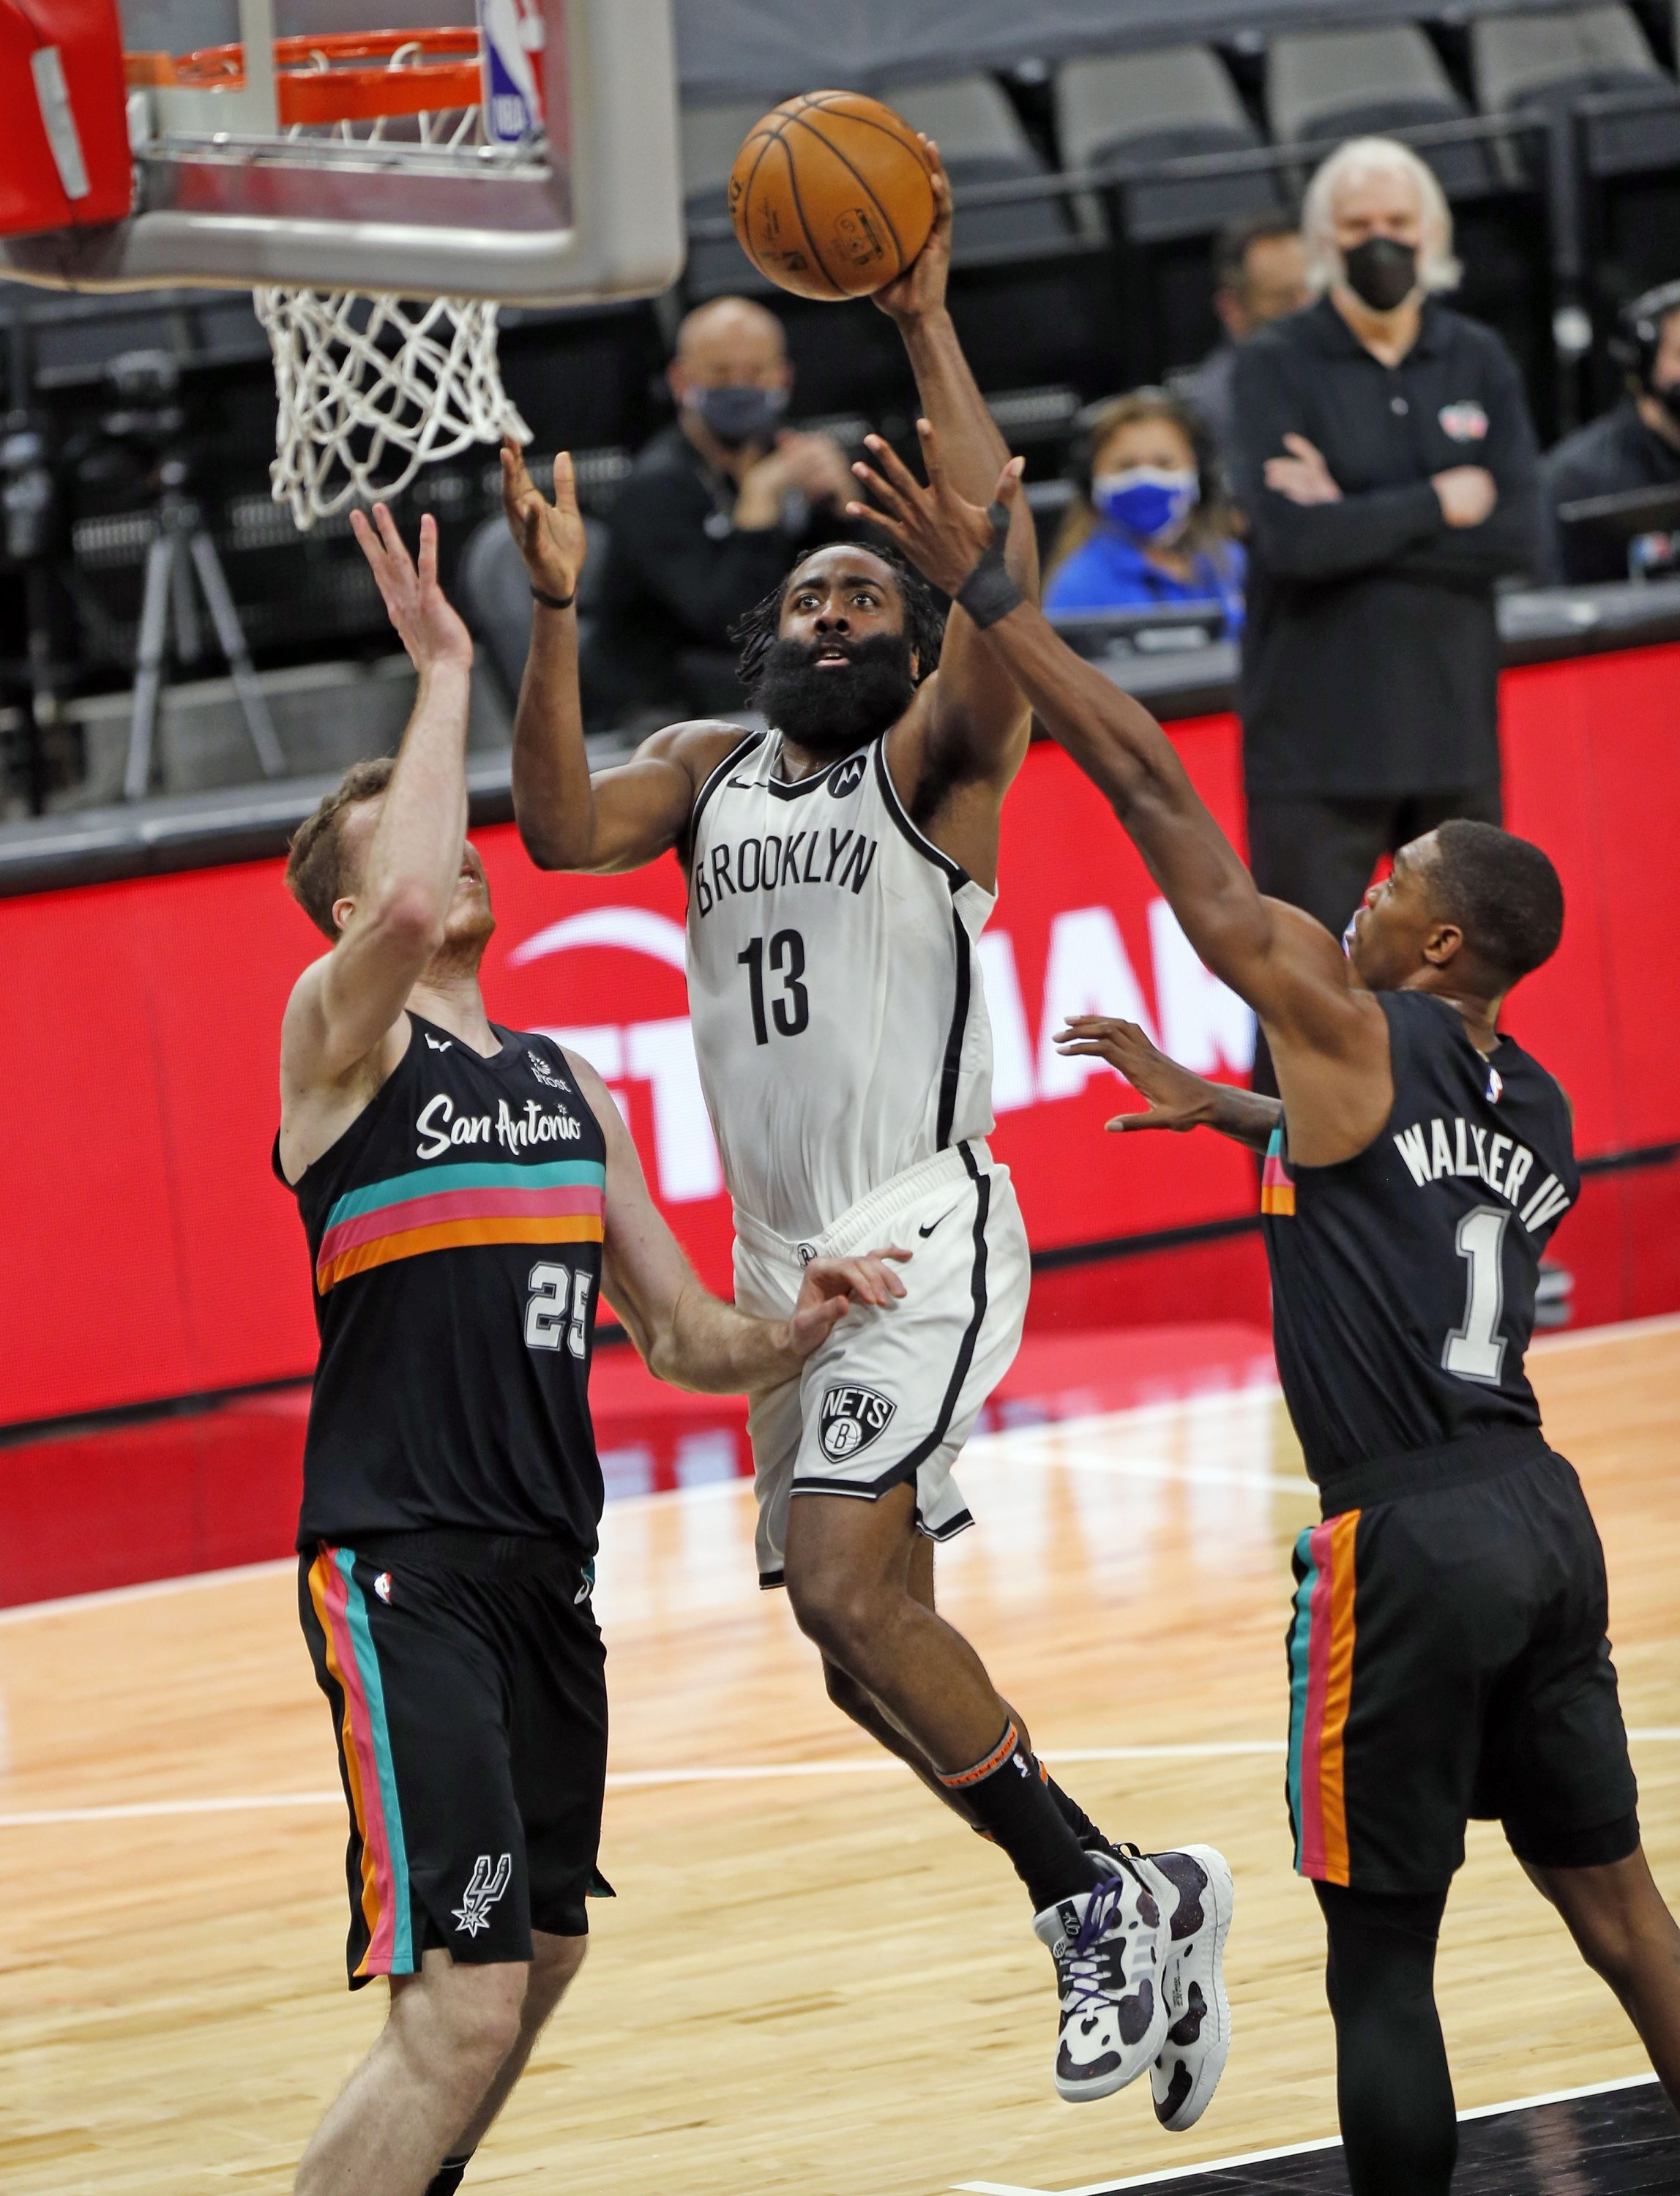 Brooklyn Nets' James Harden (C) drives to the basket against San Antonio Spurs' Lonnie Walker (R) in an NBA game at AT&T Center, in San Antonio, Texas, March 1, 2021. (AFP Photo)